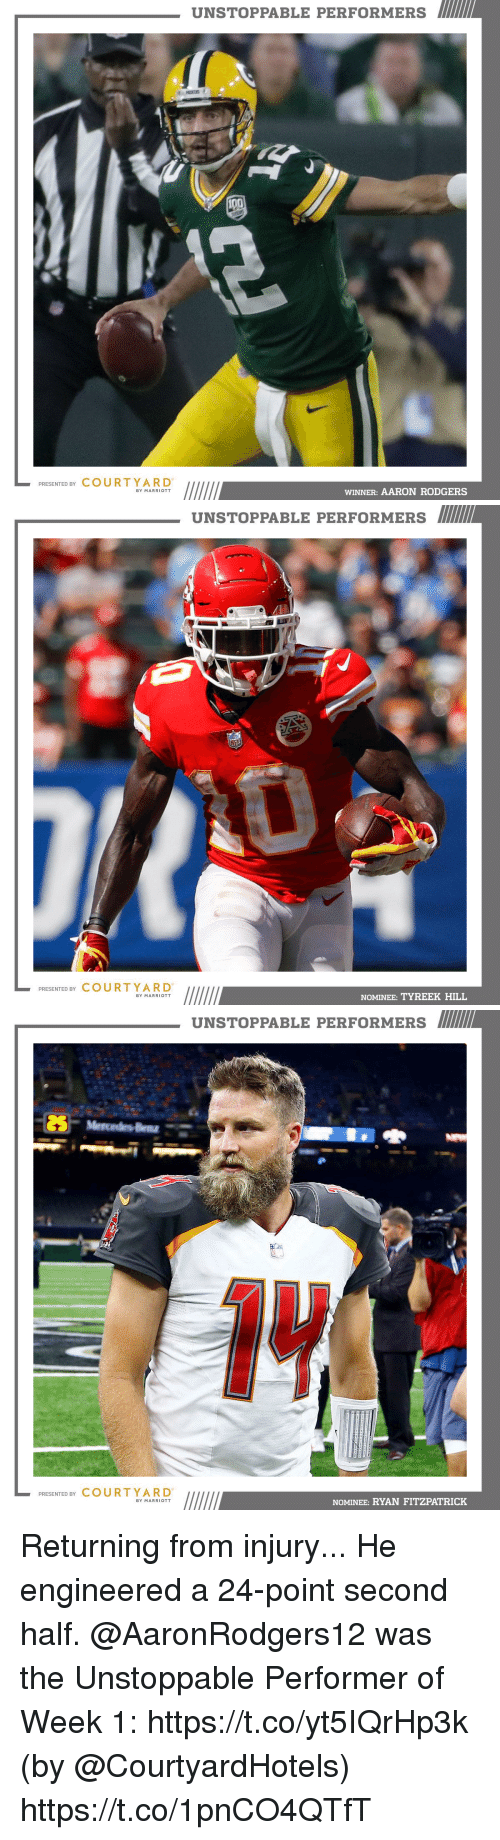 Tyreek Hill: UNSTOPPABLE PERFORMERS  PRESENTED BY COURTYARD  WINNER: AARON RODGERS  BY MARRIOTT   UNSTOPPABLE PERFORMERS  PRESENTED BY COURT YARD  NOMINEE: TYREEK HILL  BY MARRIOTT   UNSTOPPABLE PERFORMERS  PRESENTED BY COURTYARD  NOMINEE: RYAN FITZPATRICK  BY MARRIOTT Returning from injury... He engineered a 24-point second half.  @AaronRodgers12 was the Unstoppable Performer of Week 1: https://t.co/yt5IQrHp3k (by @CourtyardHotels) https://t.co/1pnCO4QTfT